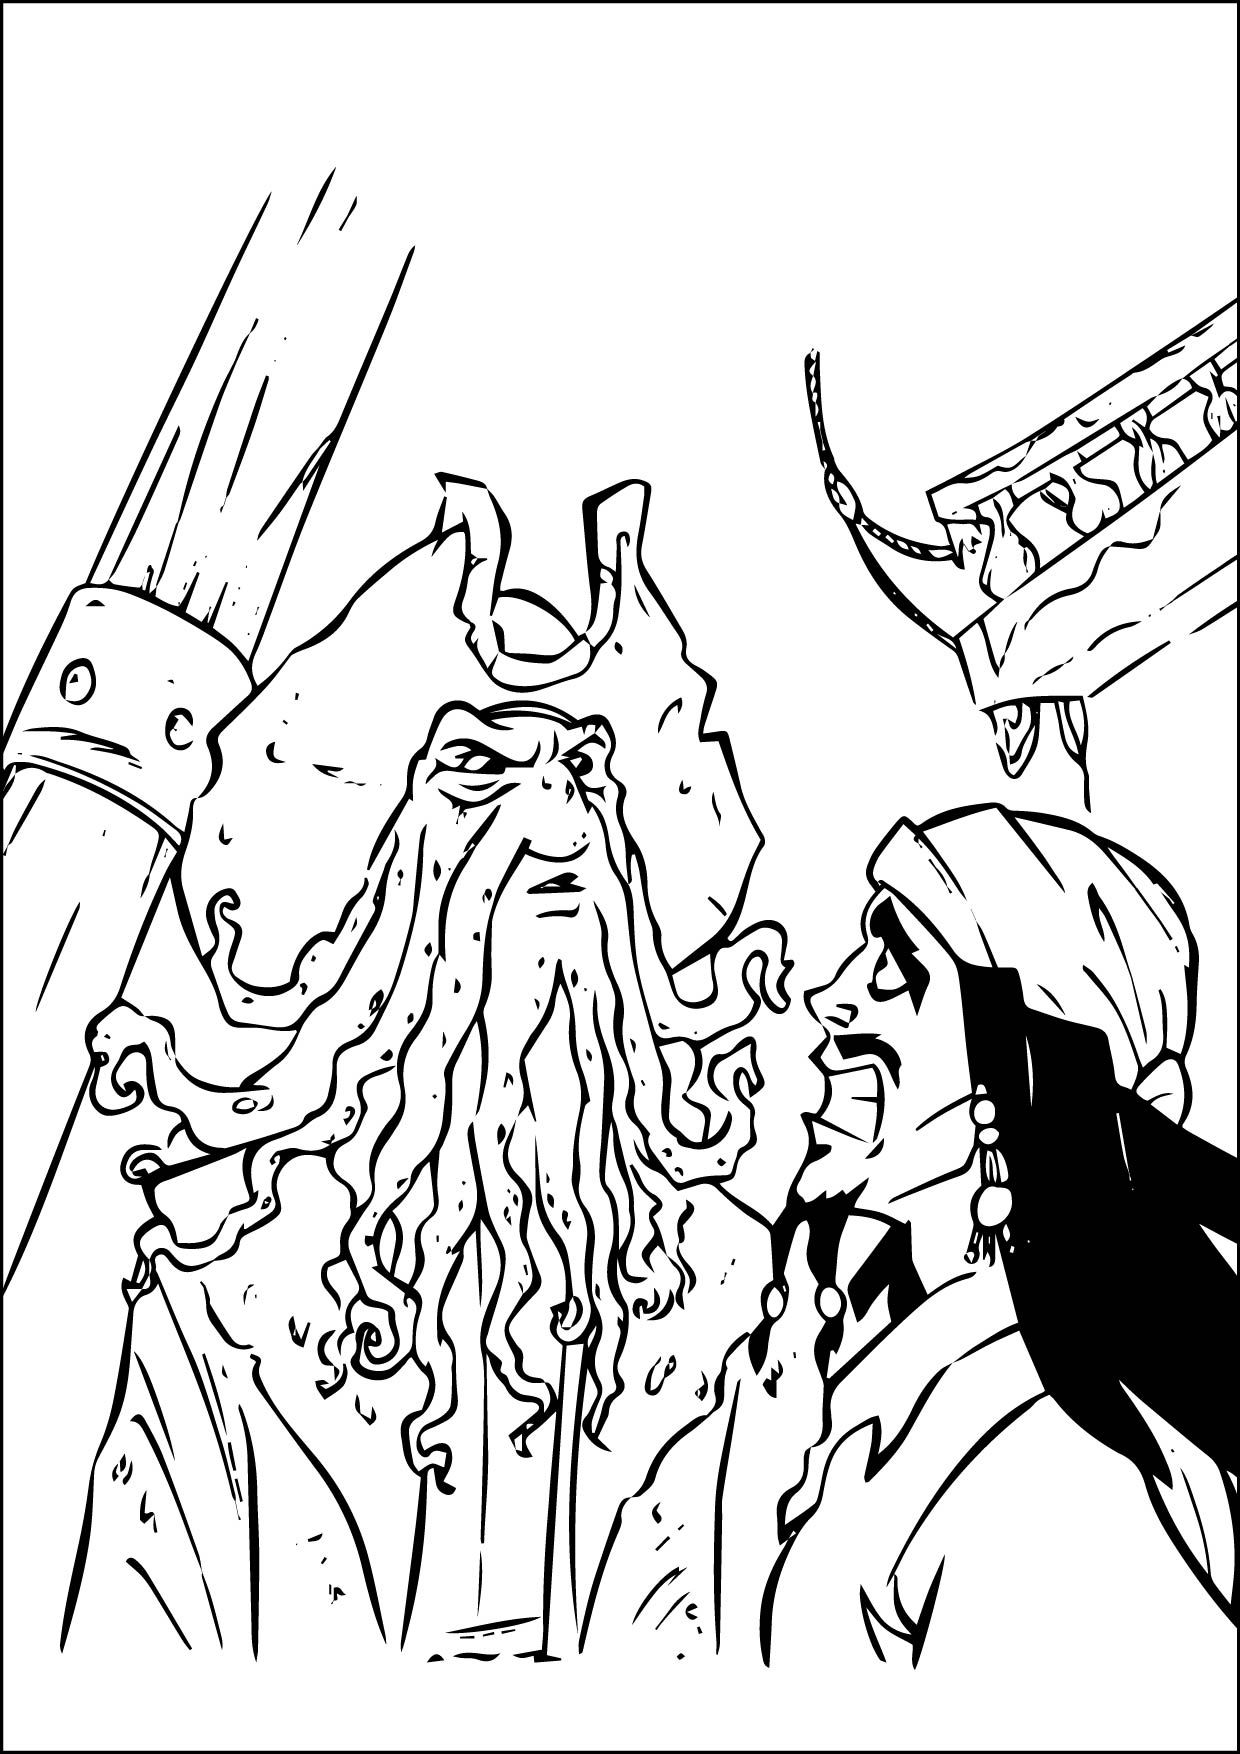 Nice Coloring Page 10 10 2015 175410 01 Check More At Http Www Mcoloring Com Index Php 2015 10 13 Coloring Pirates Of The Caribbean Coloring Pages Davy Jones